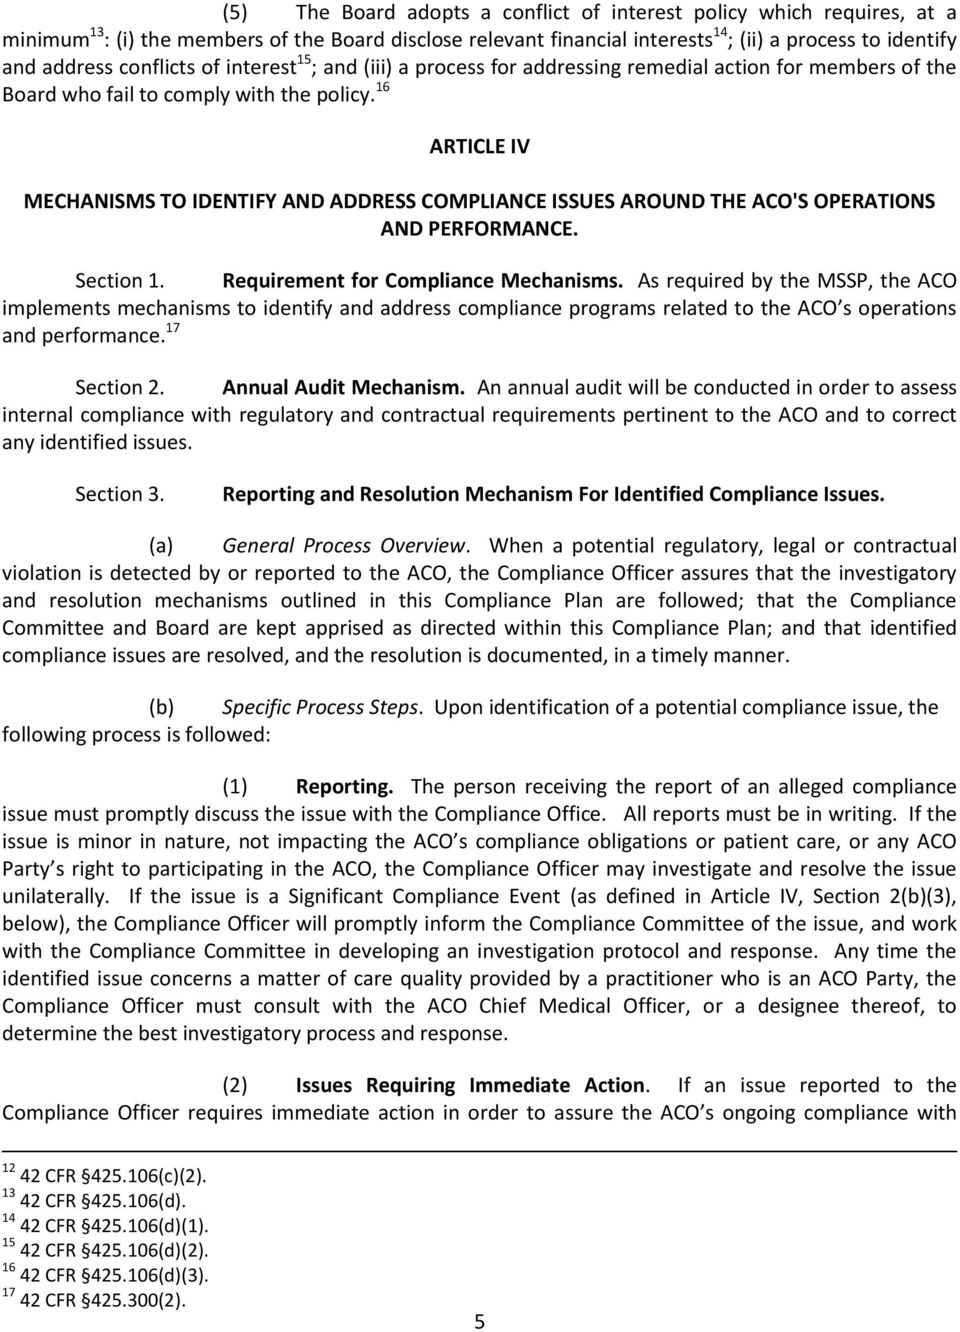 16 ARTICLE IV MECHANISMS TO IDENTIFY AND ADDRESS COMPLIANCE ISSUES AROUND THE ACO'S OPERATIONS AND PERFORMANCE. Section 1. Requirement for Compliance Mechanisms.